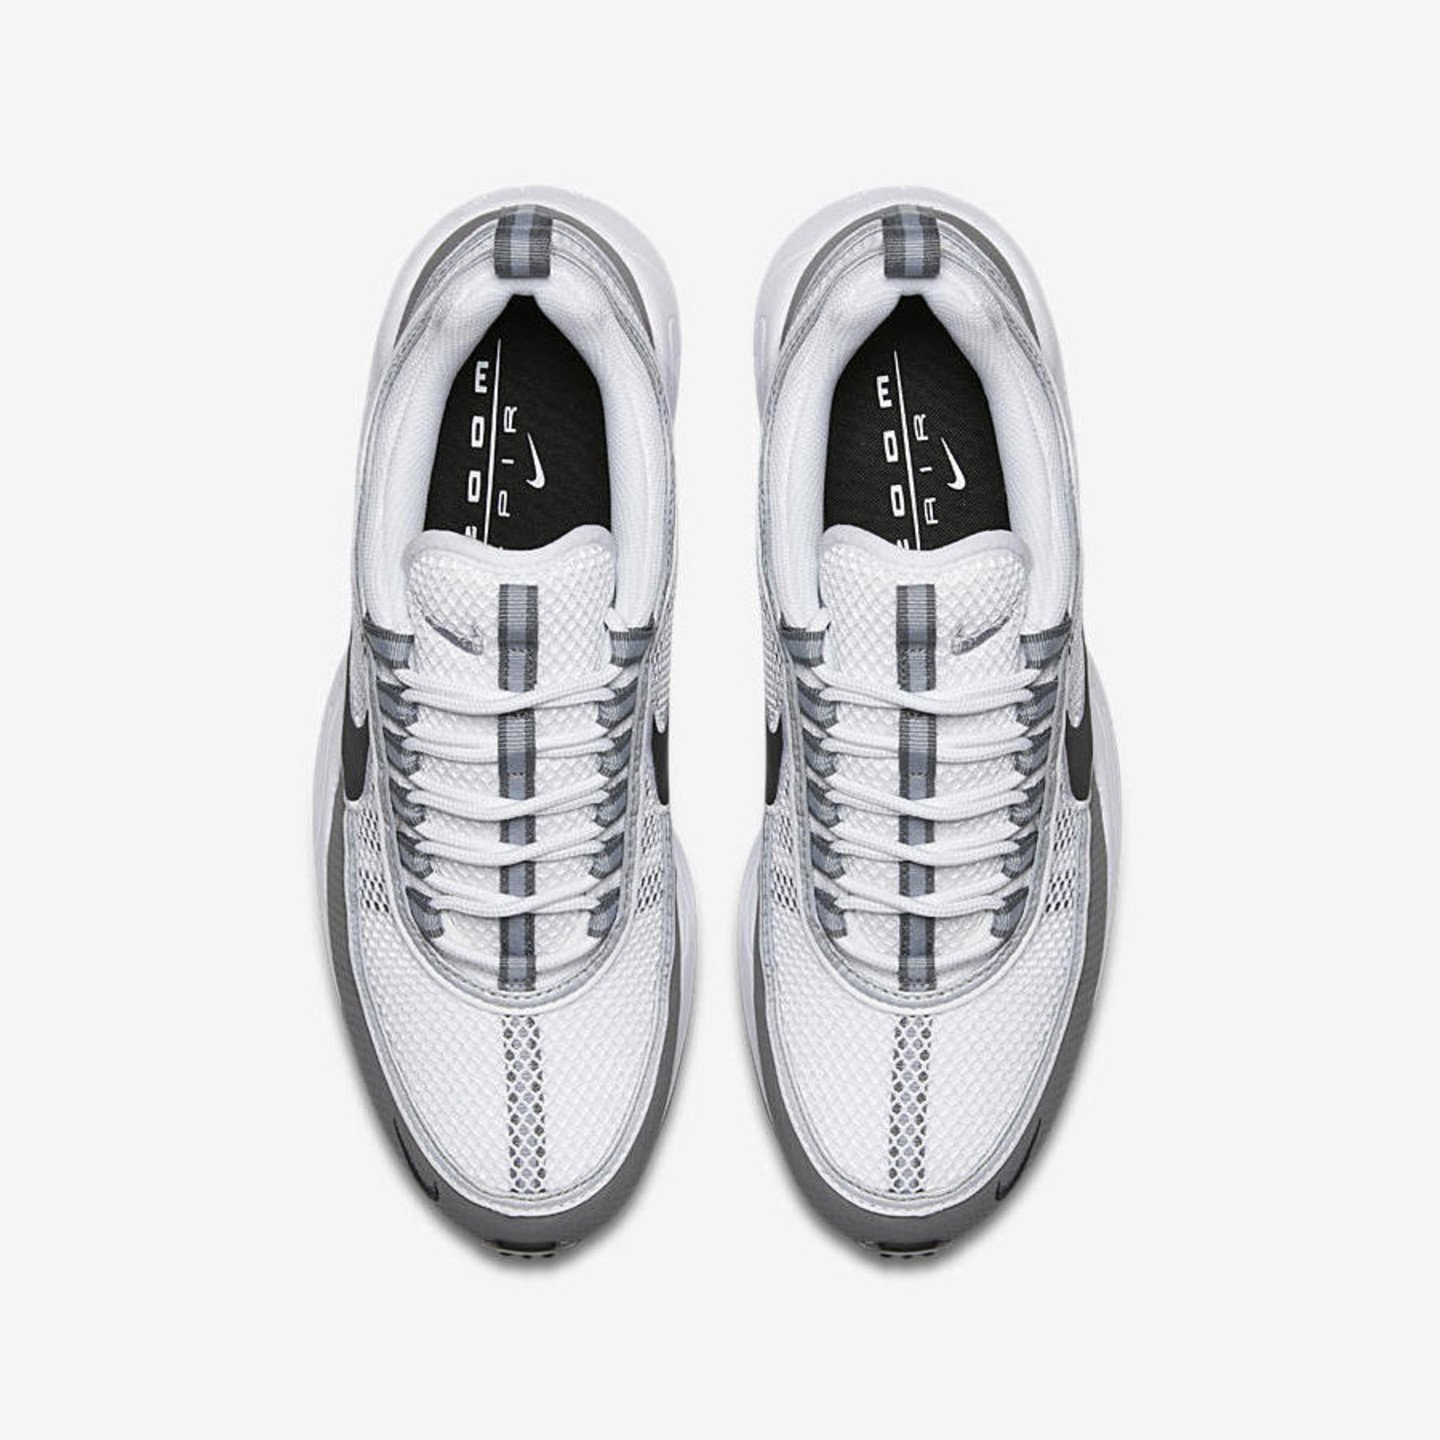 Nike Air Zoom Spiridon White / Black / Light Ash 849776-101